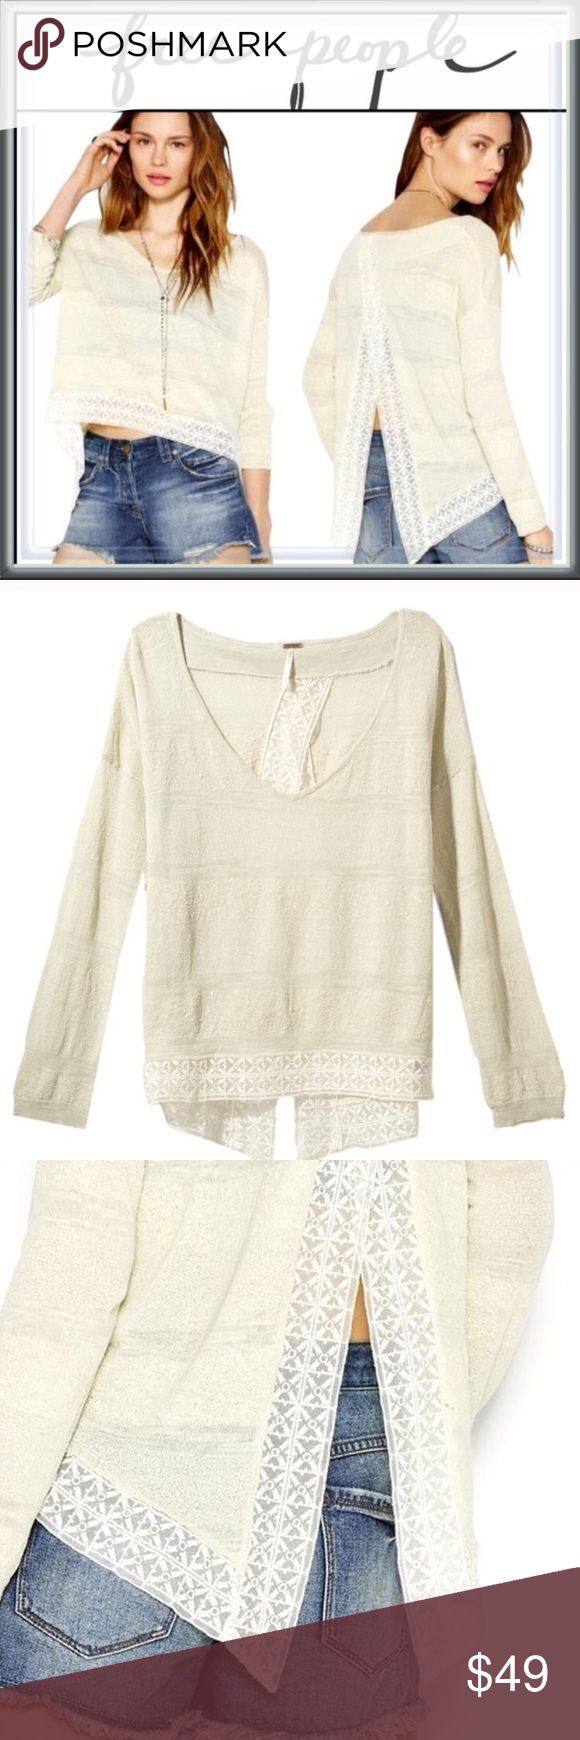 Free People Pebble Dash Envelope Split Back Top ➖BRAND: Free People ➖SIZE: XSmall ➖STYLE: Pebble Dash Embroidered Trim Envelope features an open back with muted honeydew and ivory stripes. This long sleeve semi sheer top includes a semi deep V neck that can be pulled to the side and worn off the shoulder . The back crossover smells fall open over the back with a lace trim.    ❌NO TRADE   324498 Free People Tops Blouses